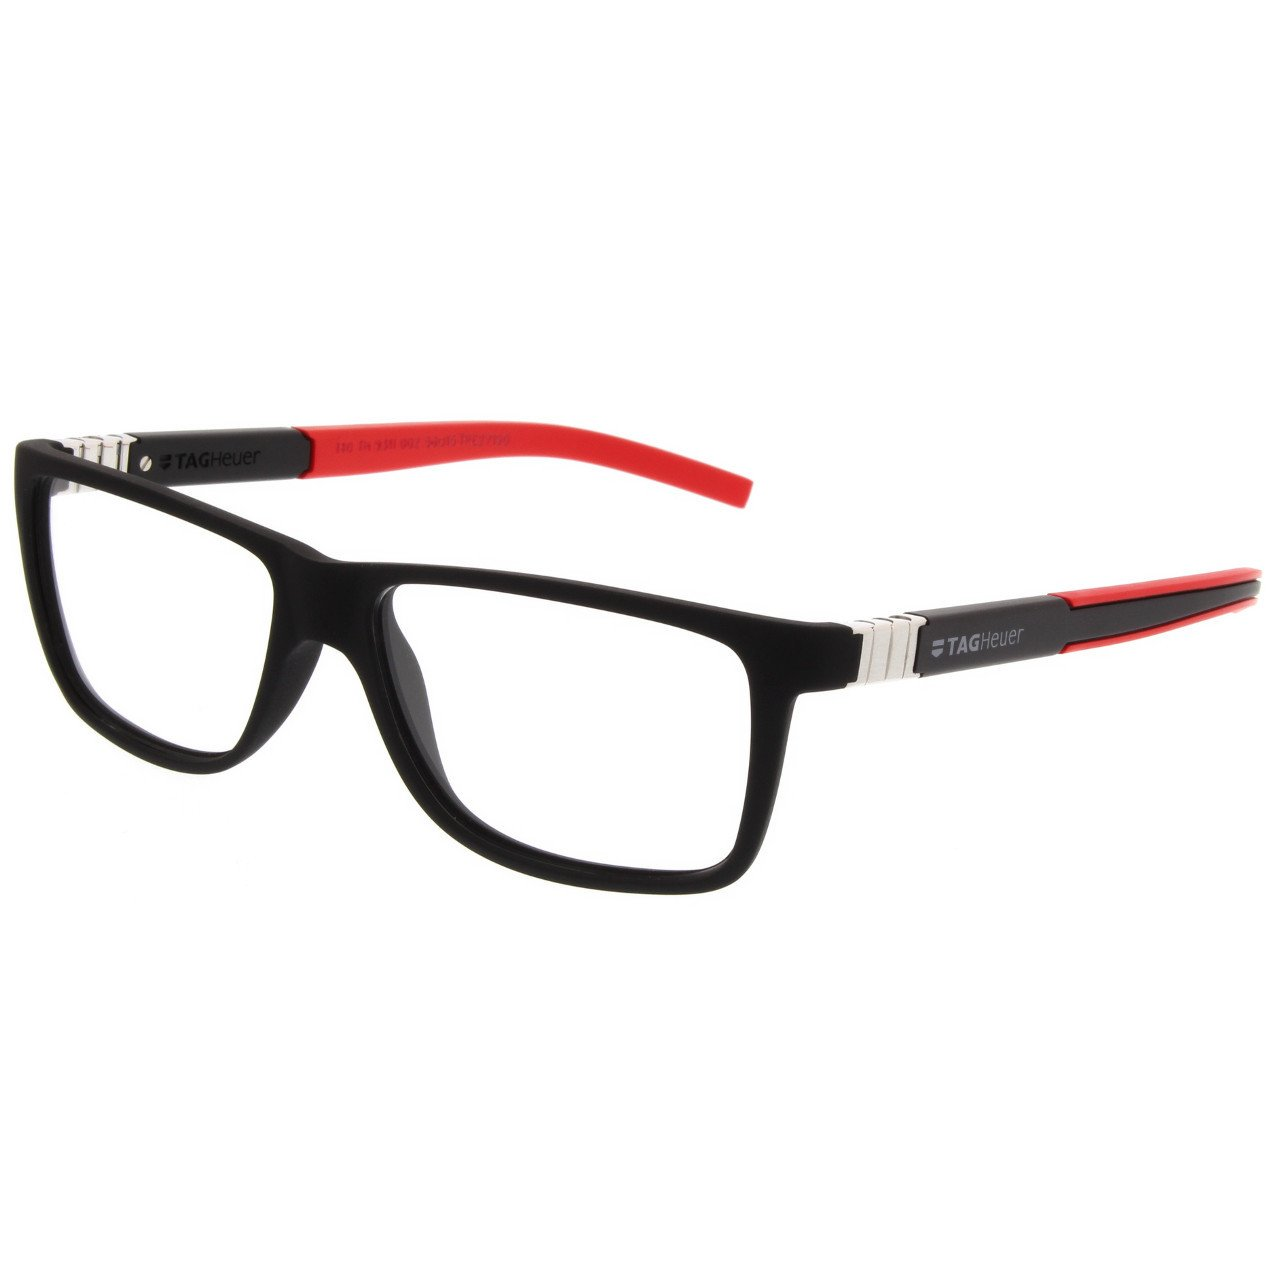 Tag Heuer Designer Optical Eyeglasses 9312 Legend Unisex Frames (Black / Red)